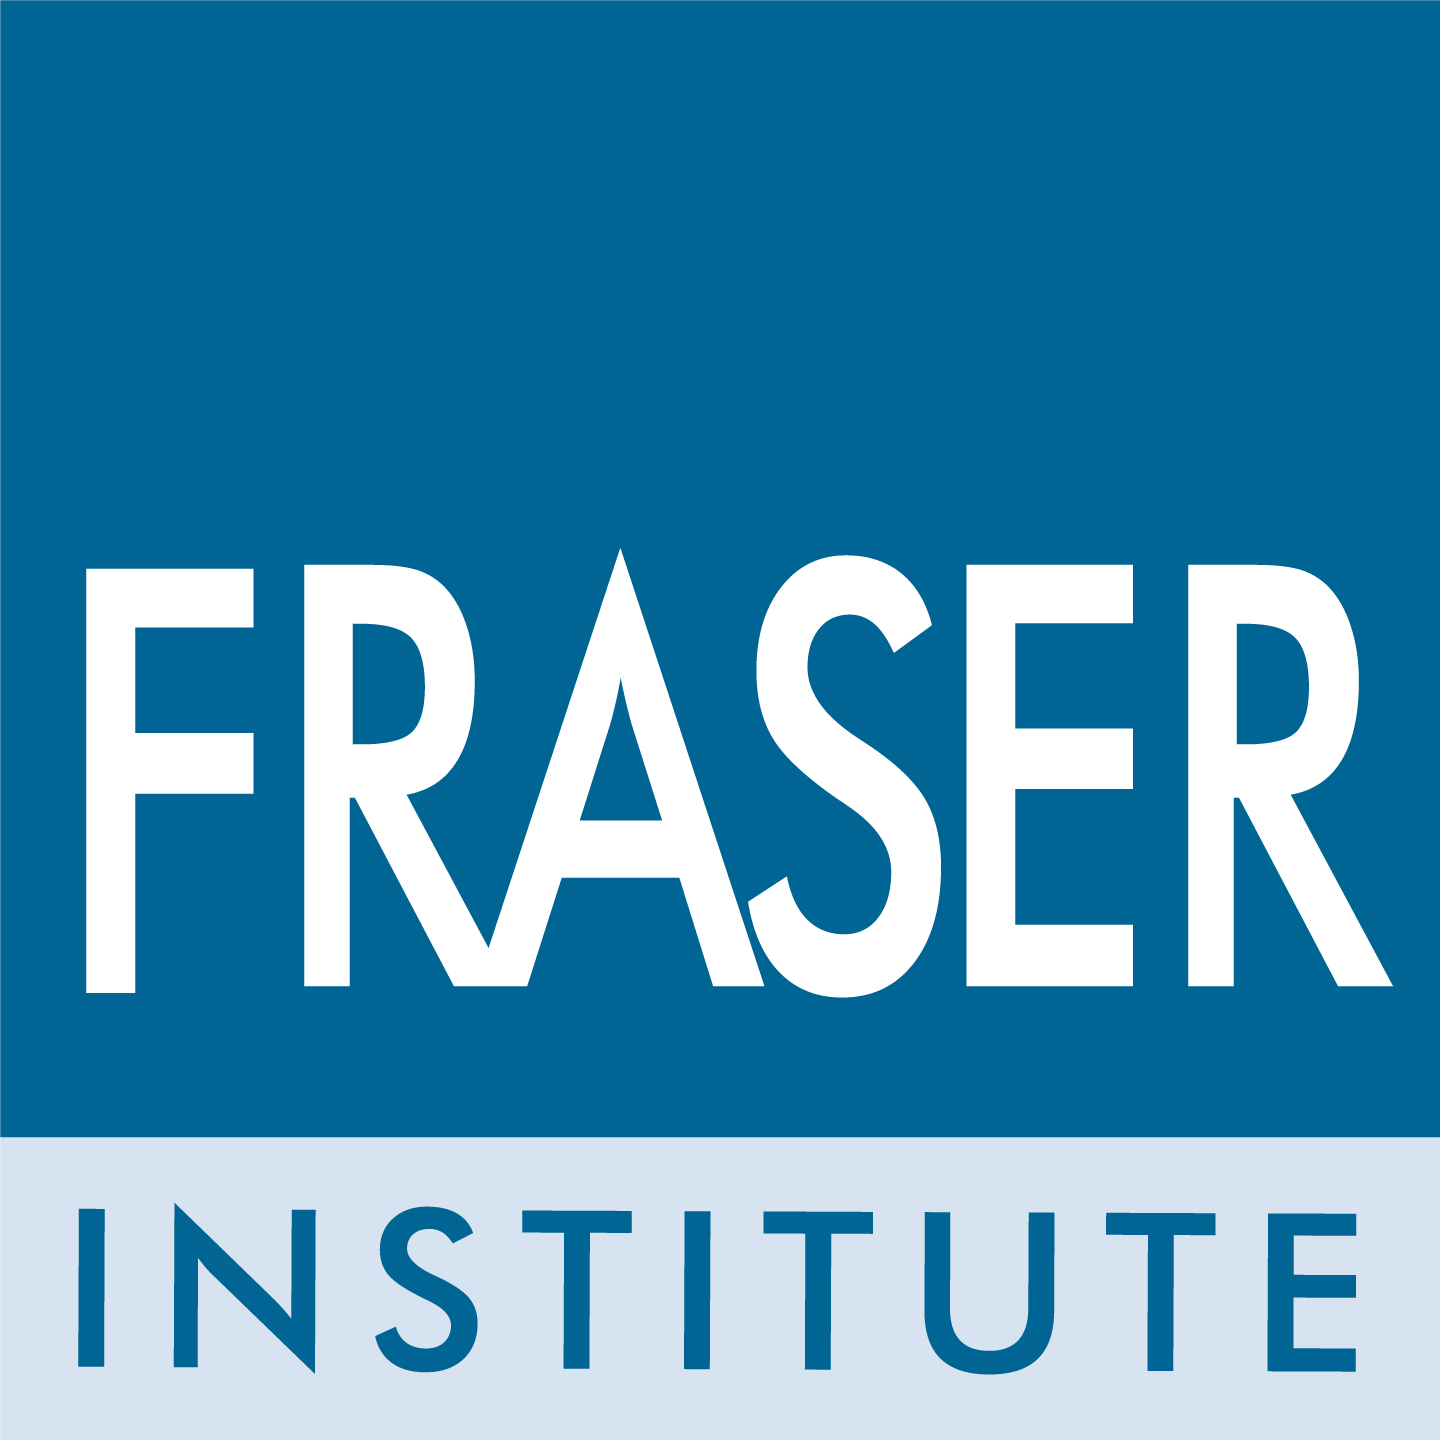 Fraser Institute News Release: Newfoundland and Labrador among most indebted provinces in Canada, New Brunswick and Nova Scotia middling debt performers, P.E.I